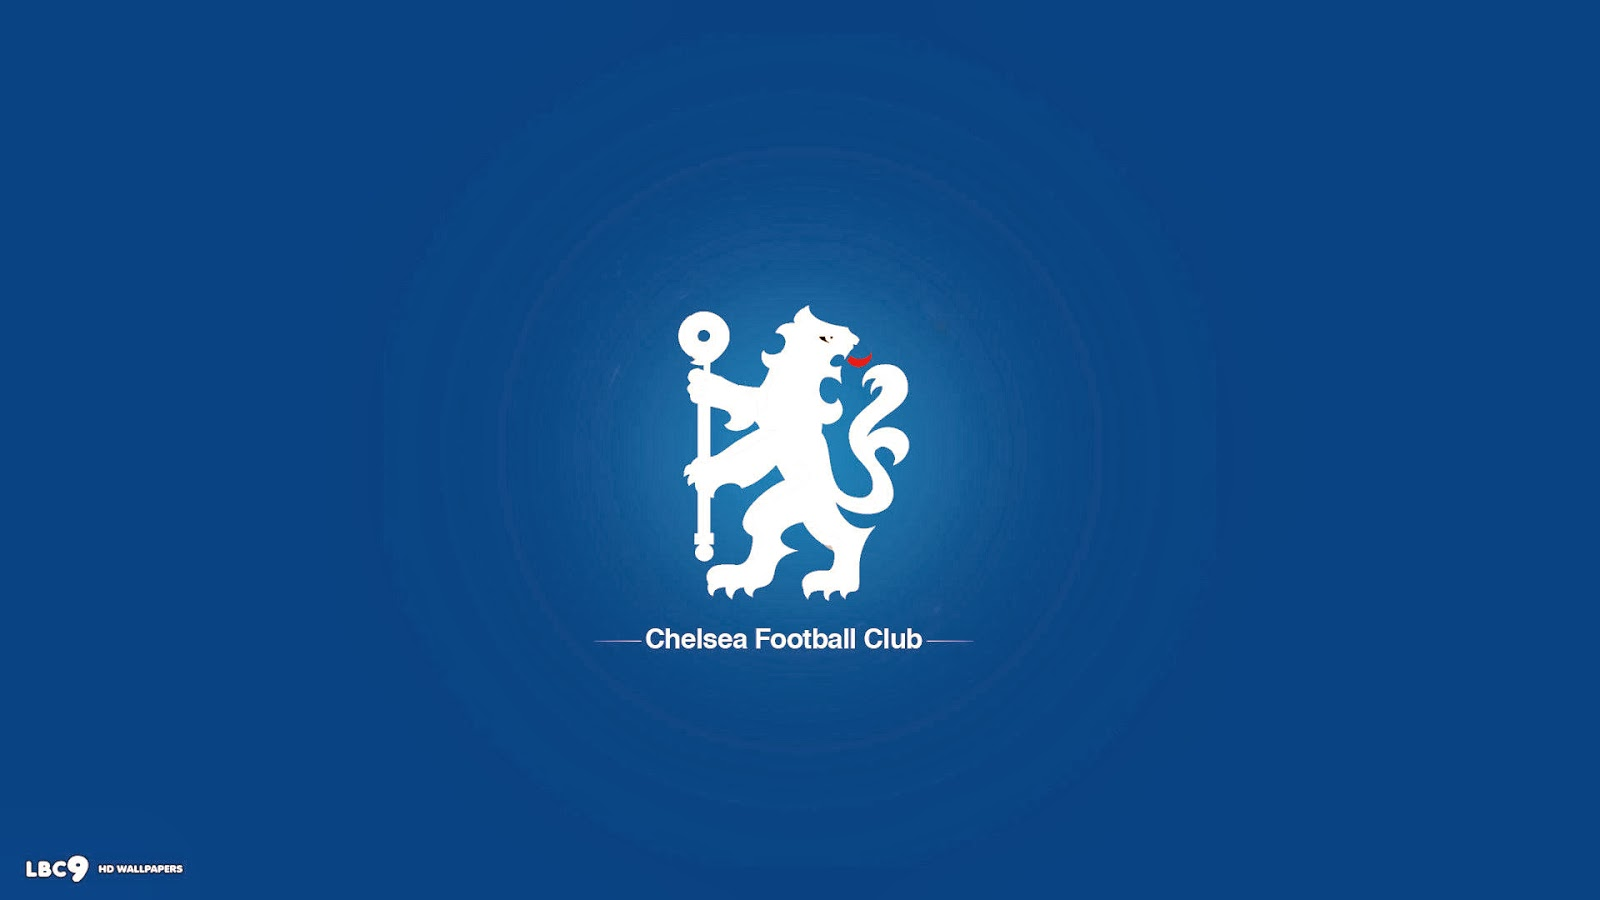 Football: Chelsea Football Club HD Wallpapers